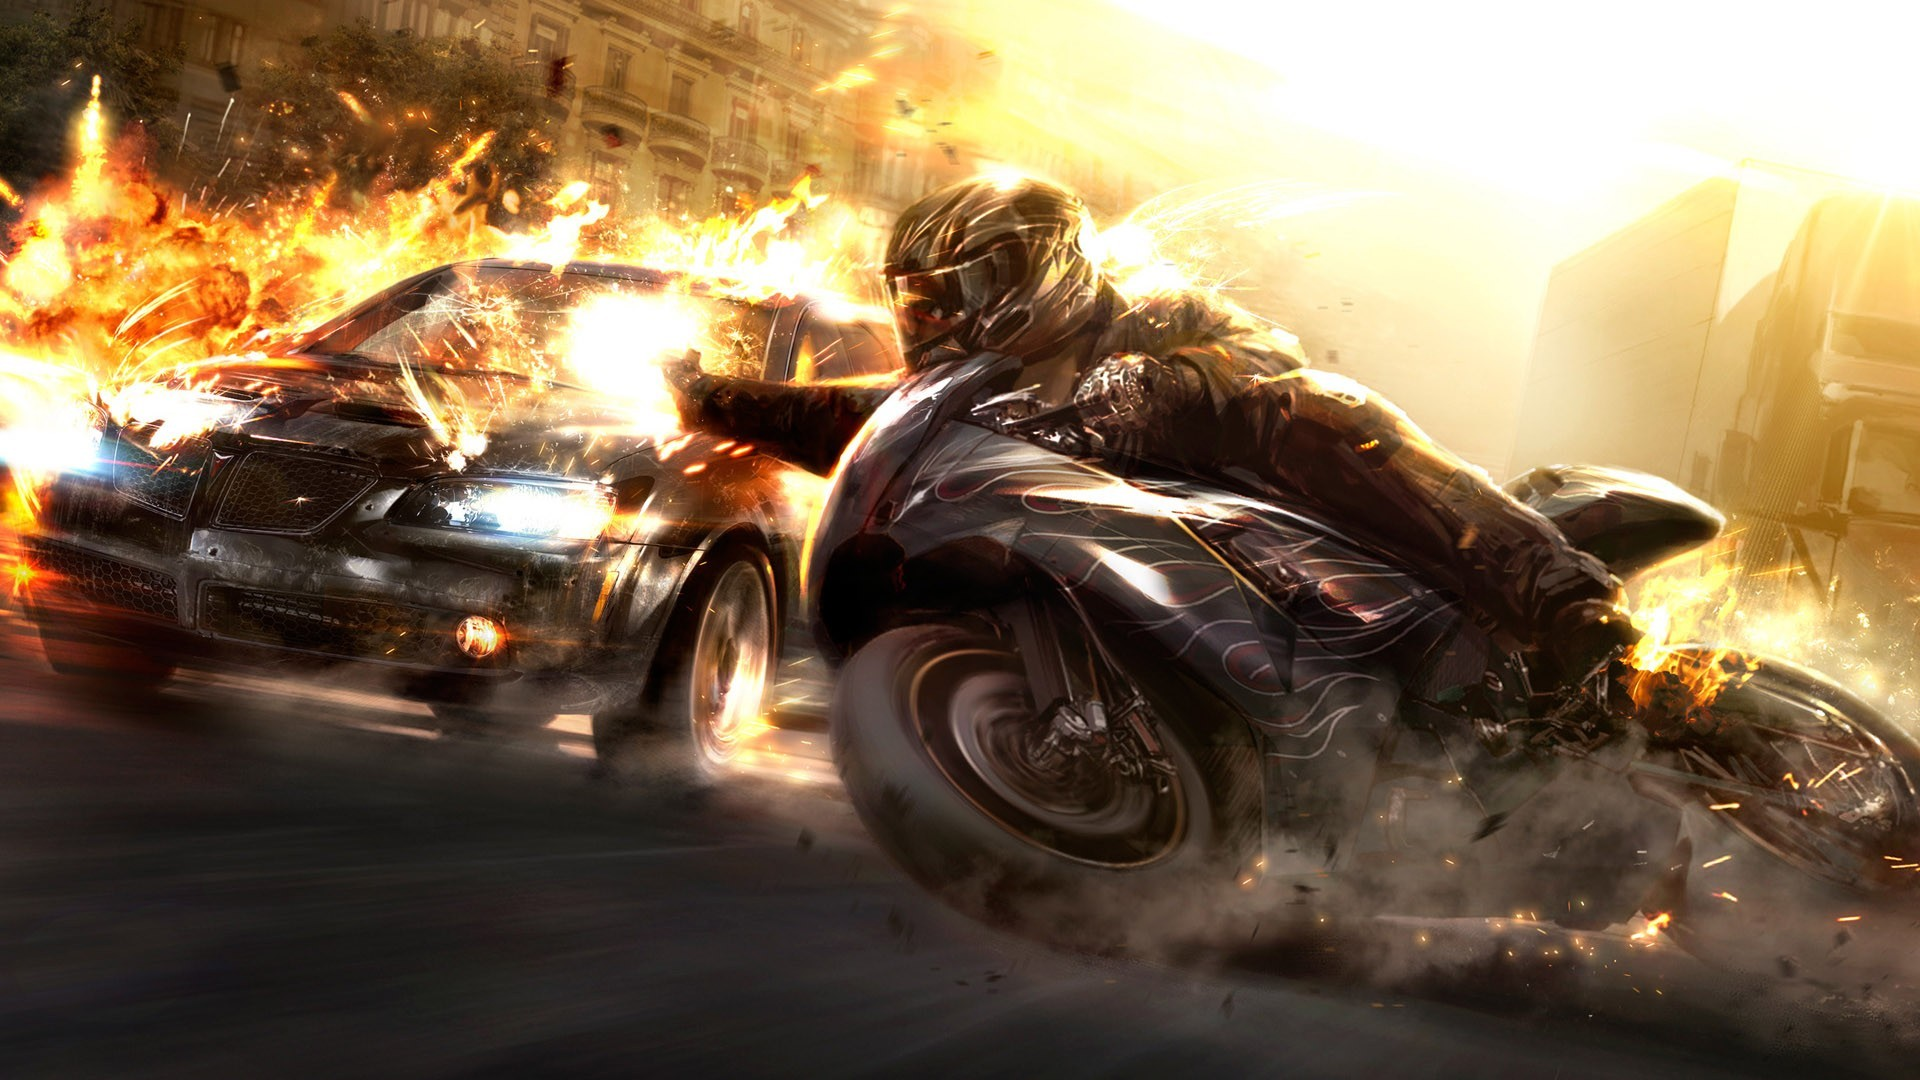 hd wallpaper of need for speed